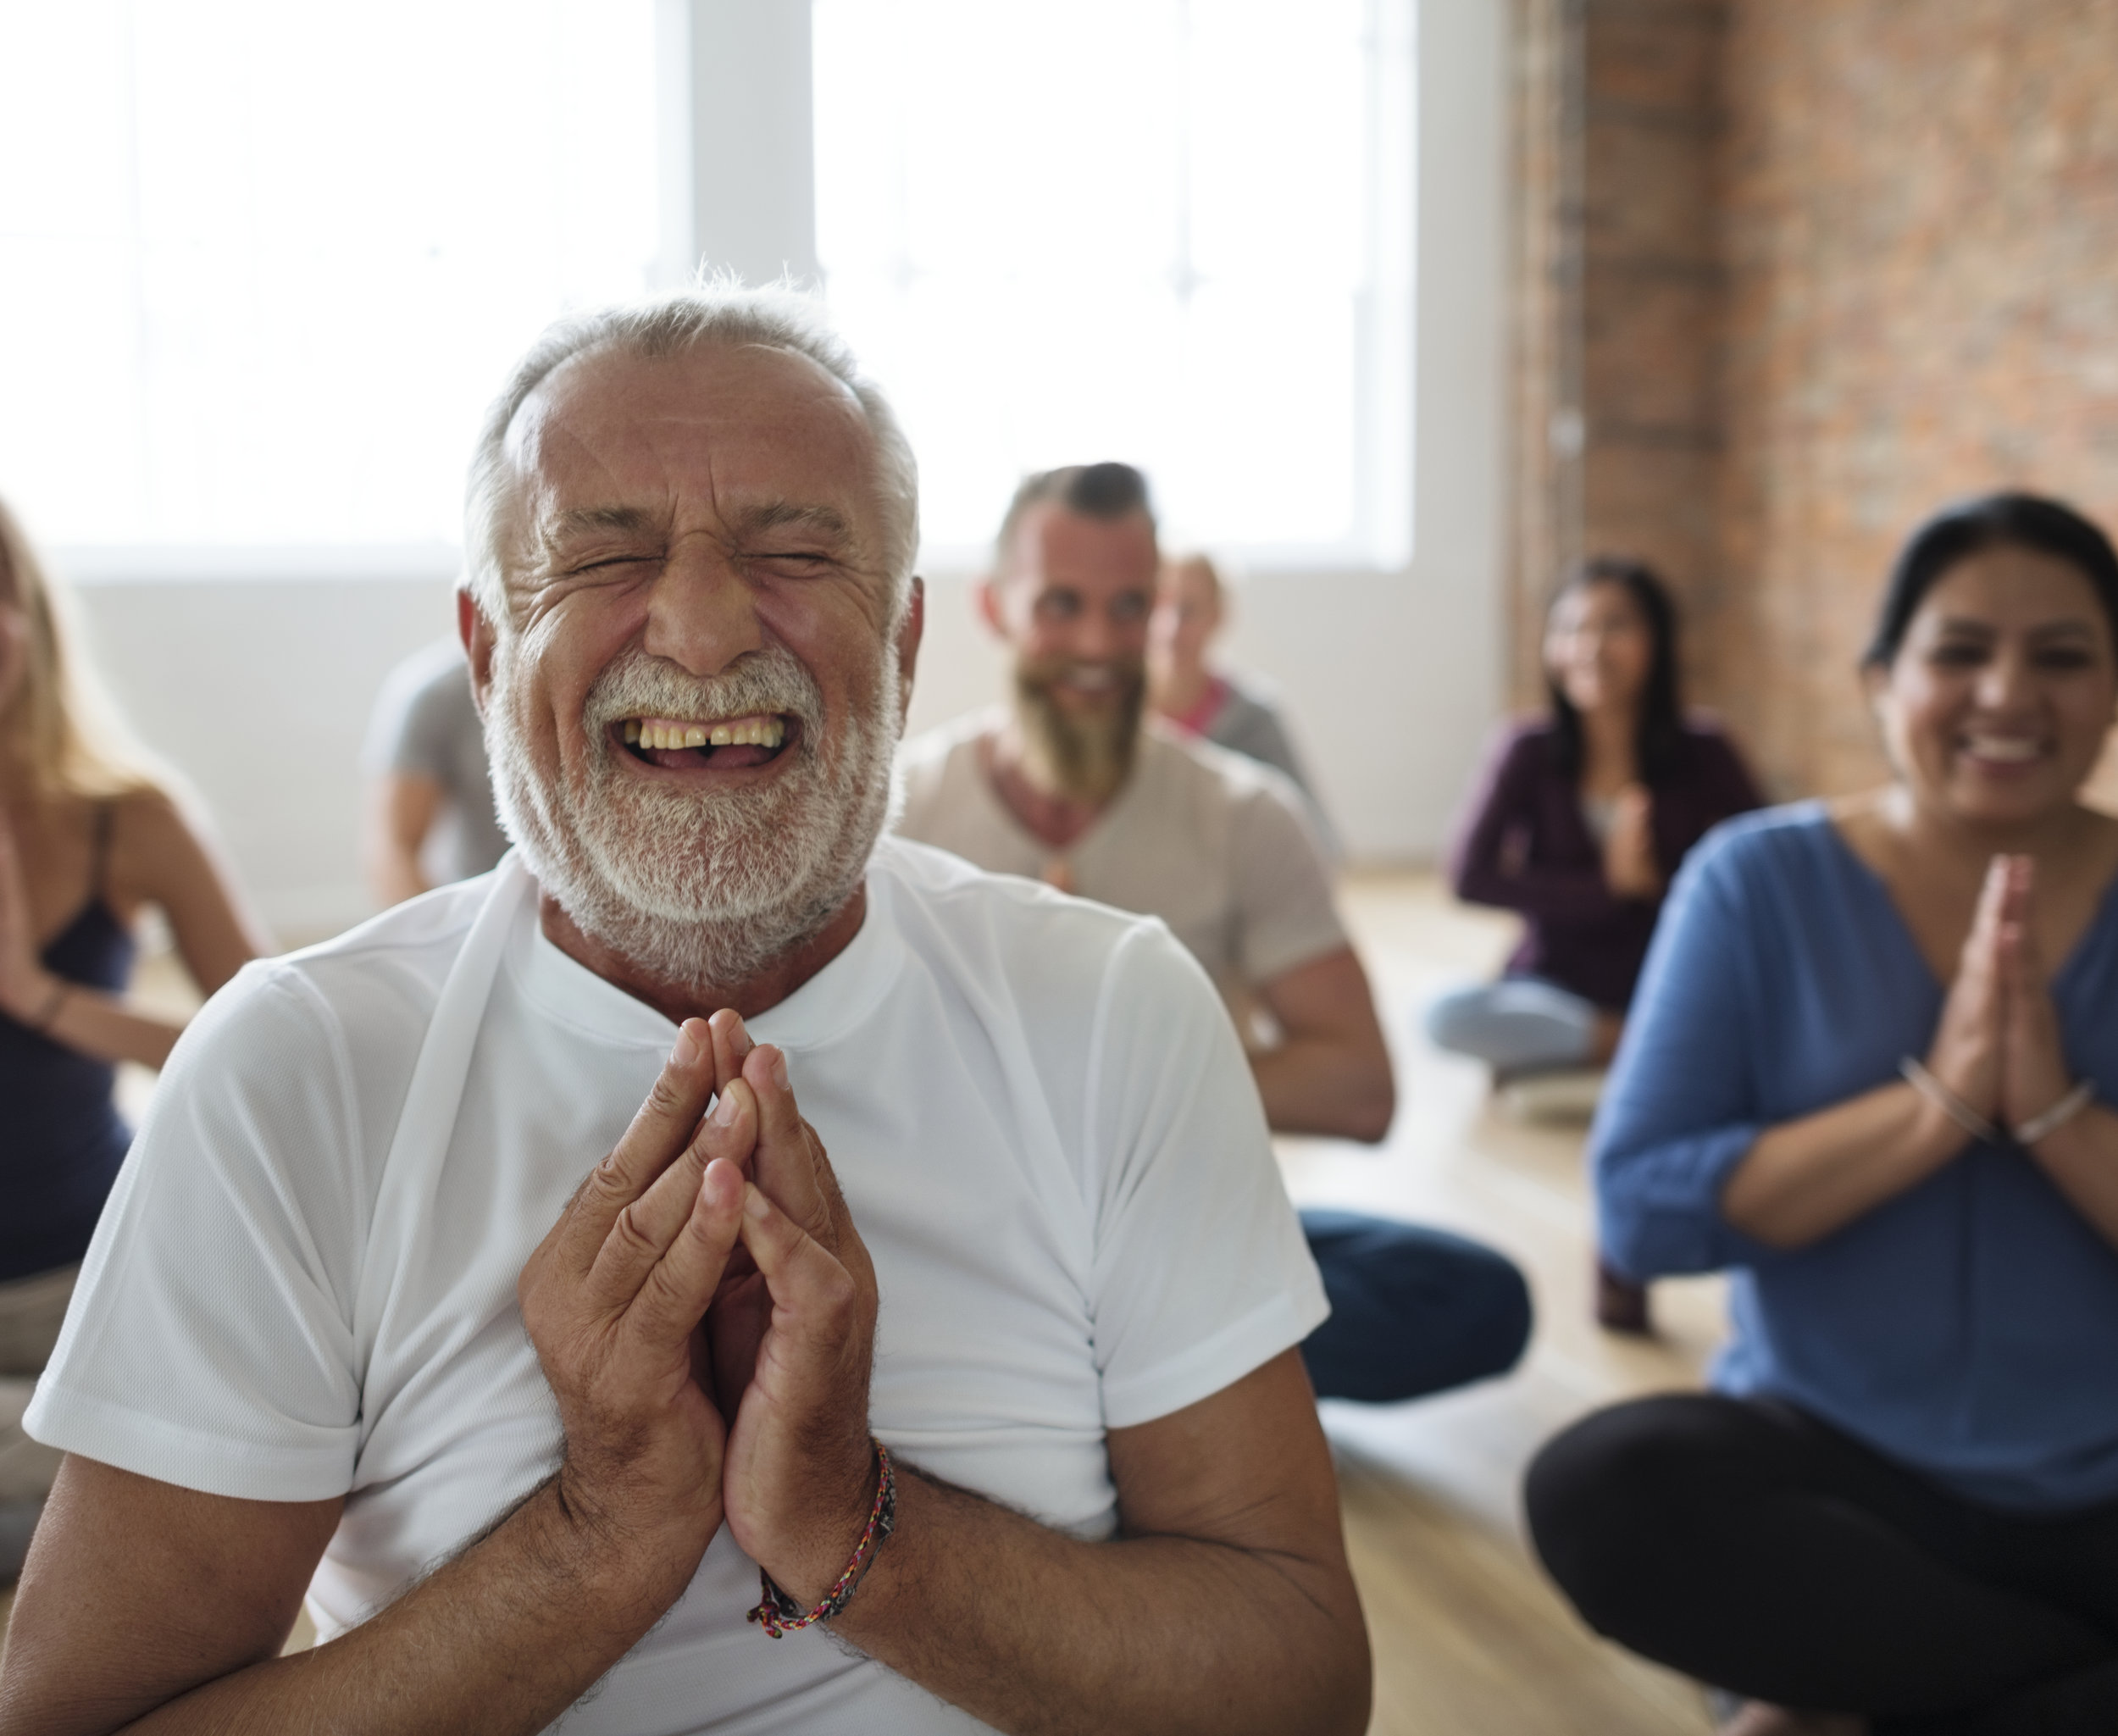 Guy Laughing in Yoga Class.jpg